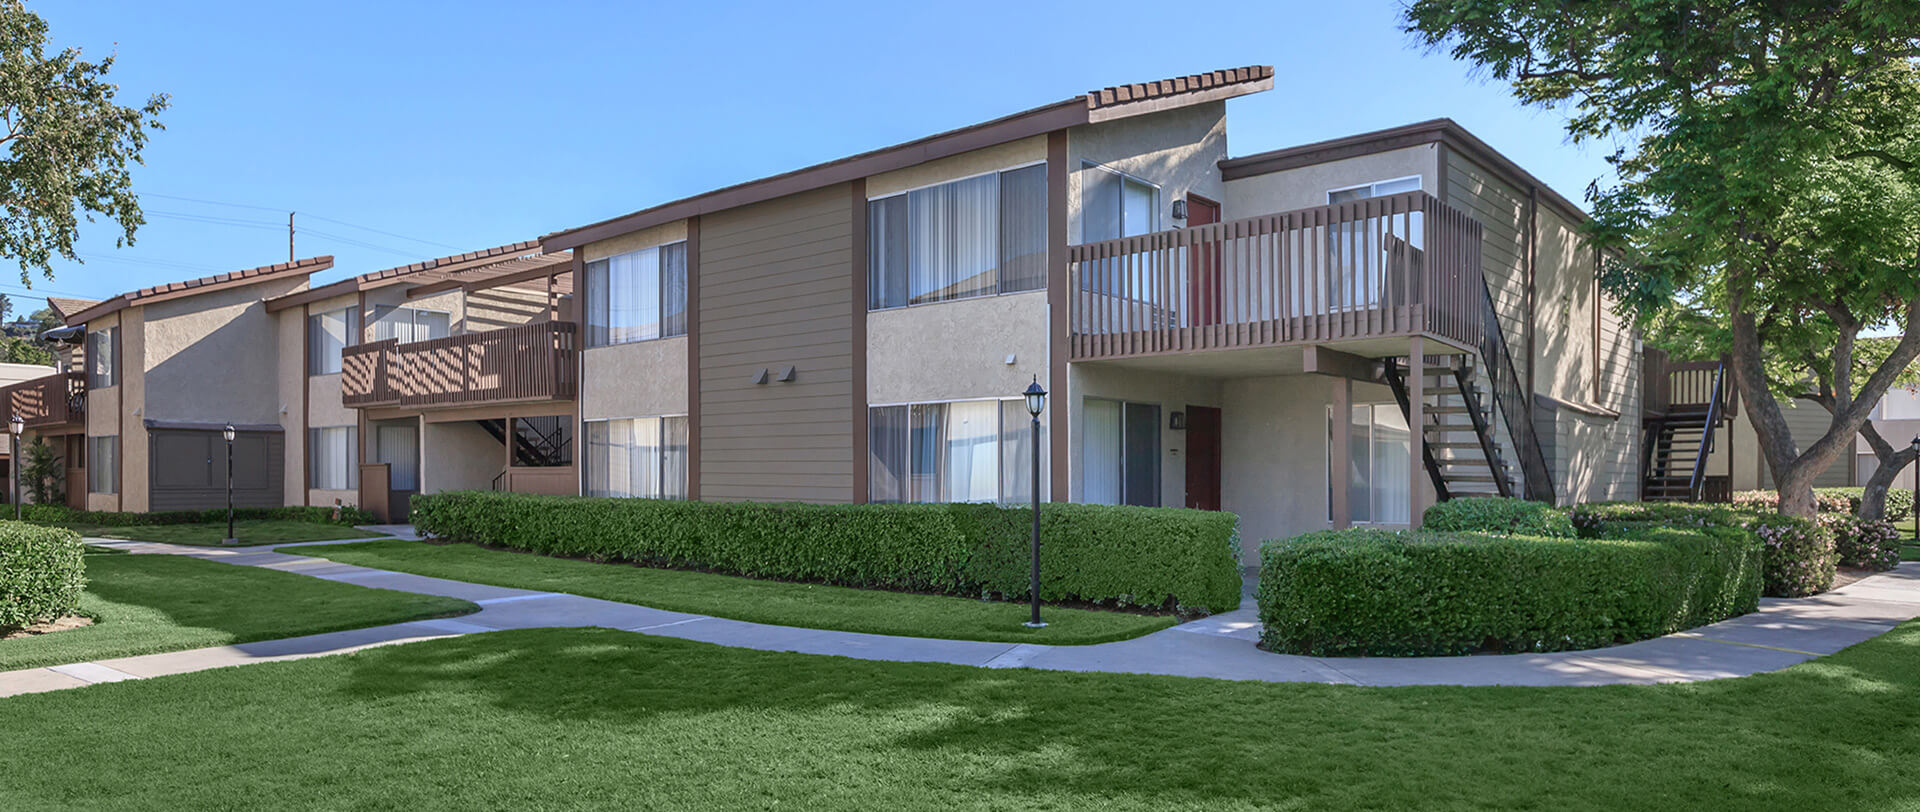 Canyon Village Apartment Homes Apartments in Anaheim Hills CA